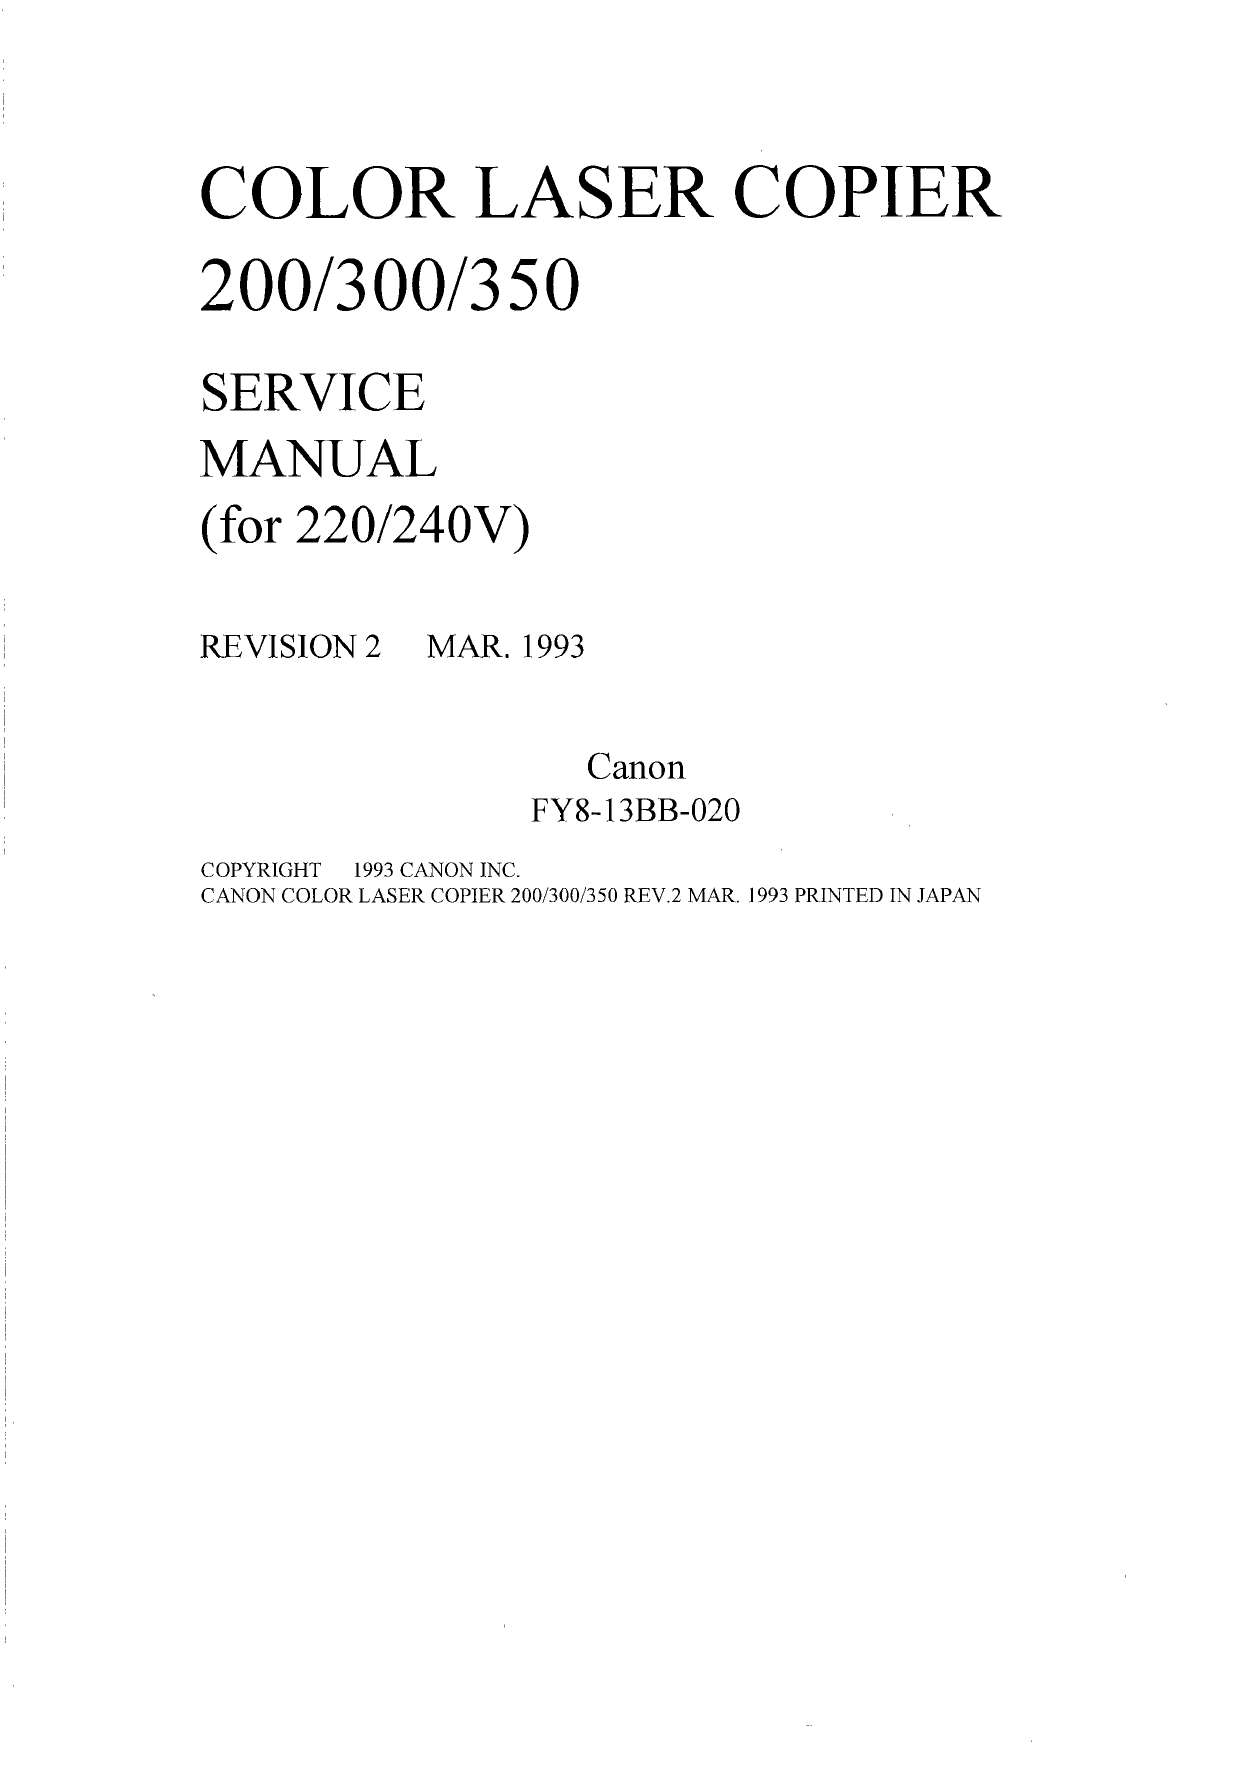 Canon ColorLaserCopier CLC-200 300 350 Parts and Service Manual-1